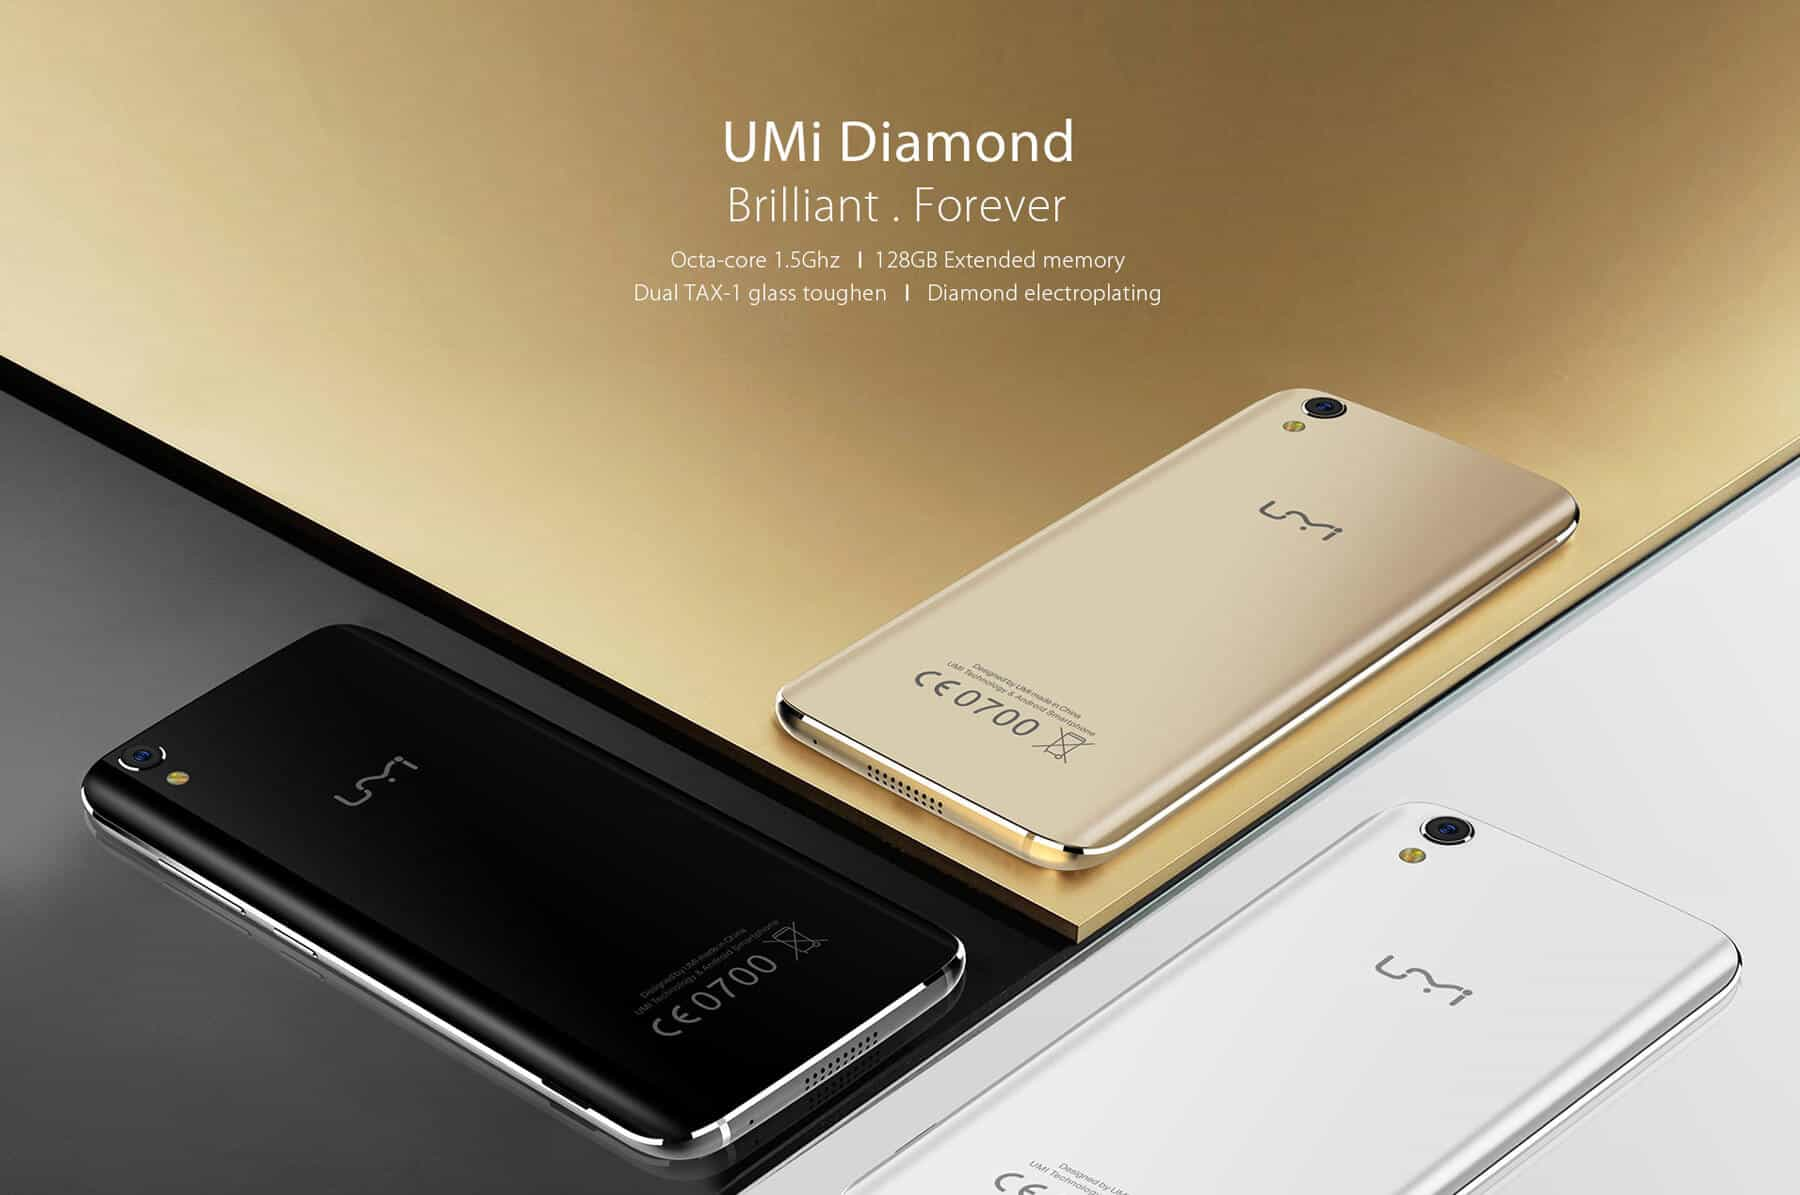 Photo of UMi Diamond 4G Smartphone Gets on Sale for $99.99 at GearBest